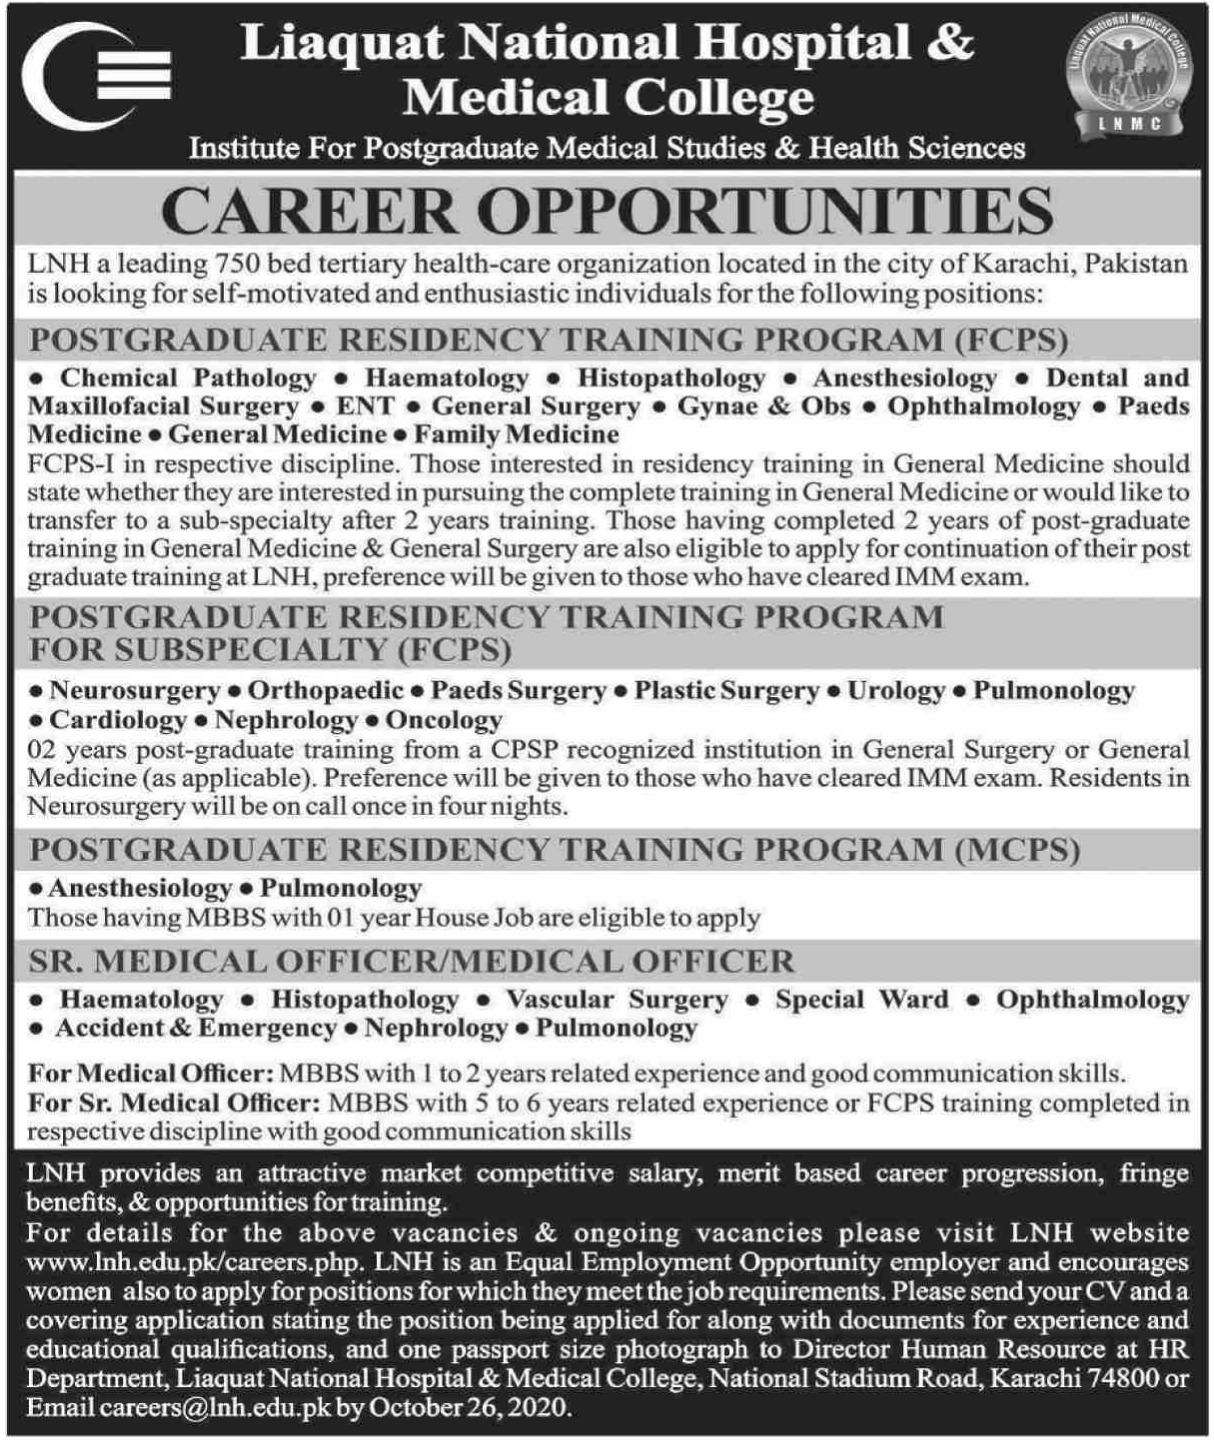 Liaquat National Hospital & Medical College Karachi Jobs October 2020